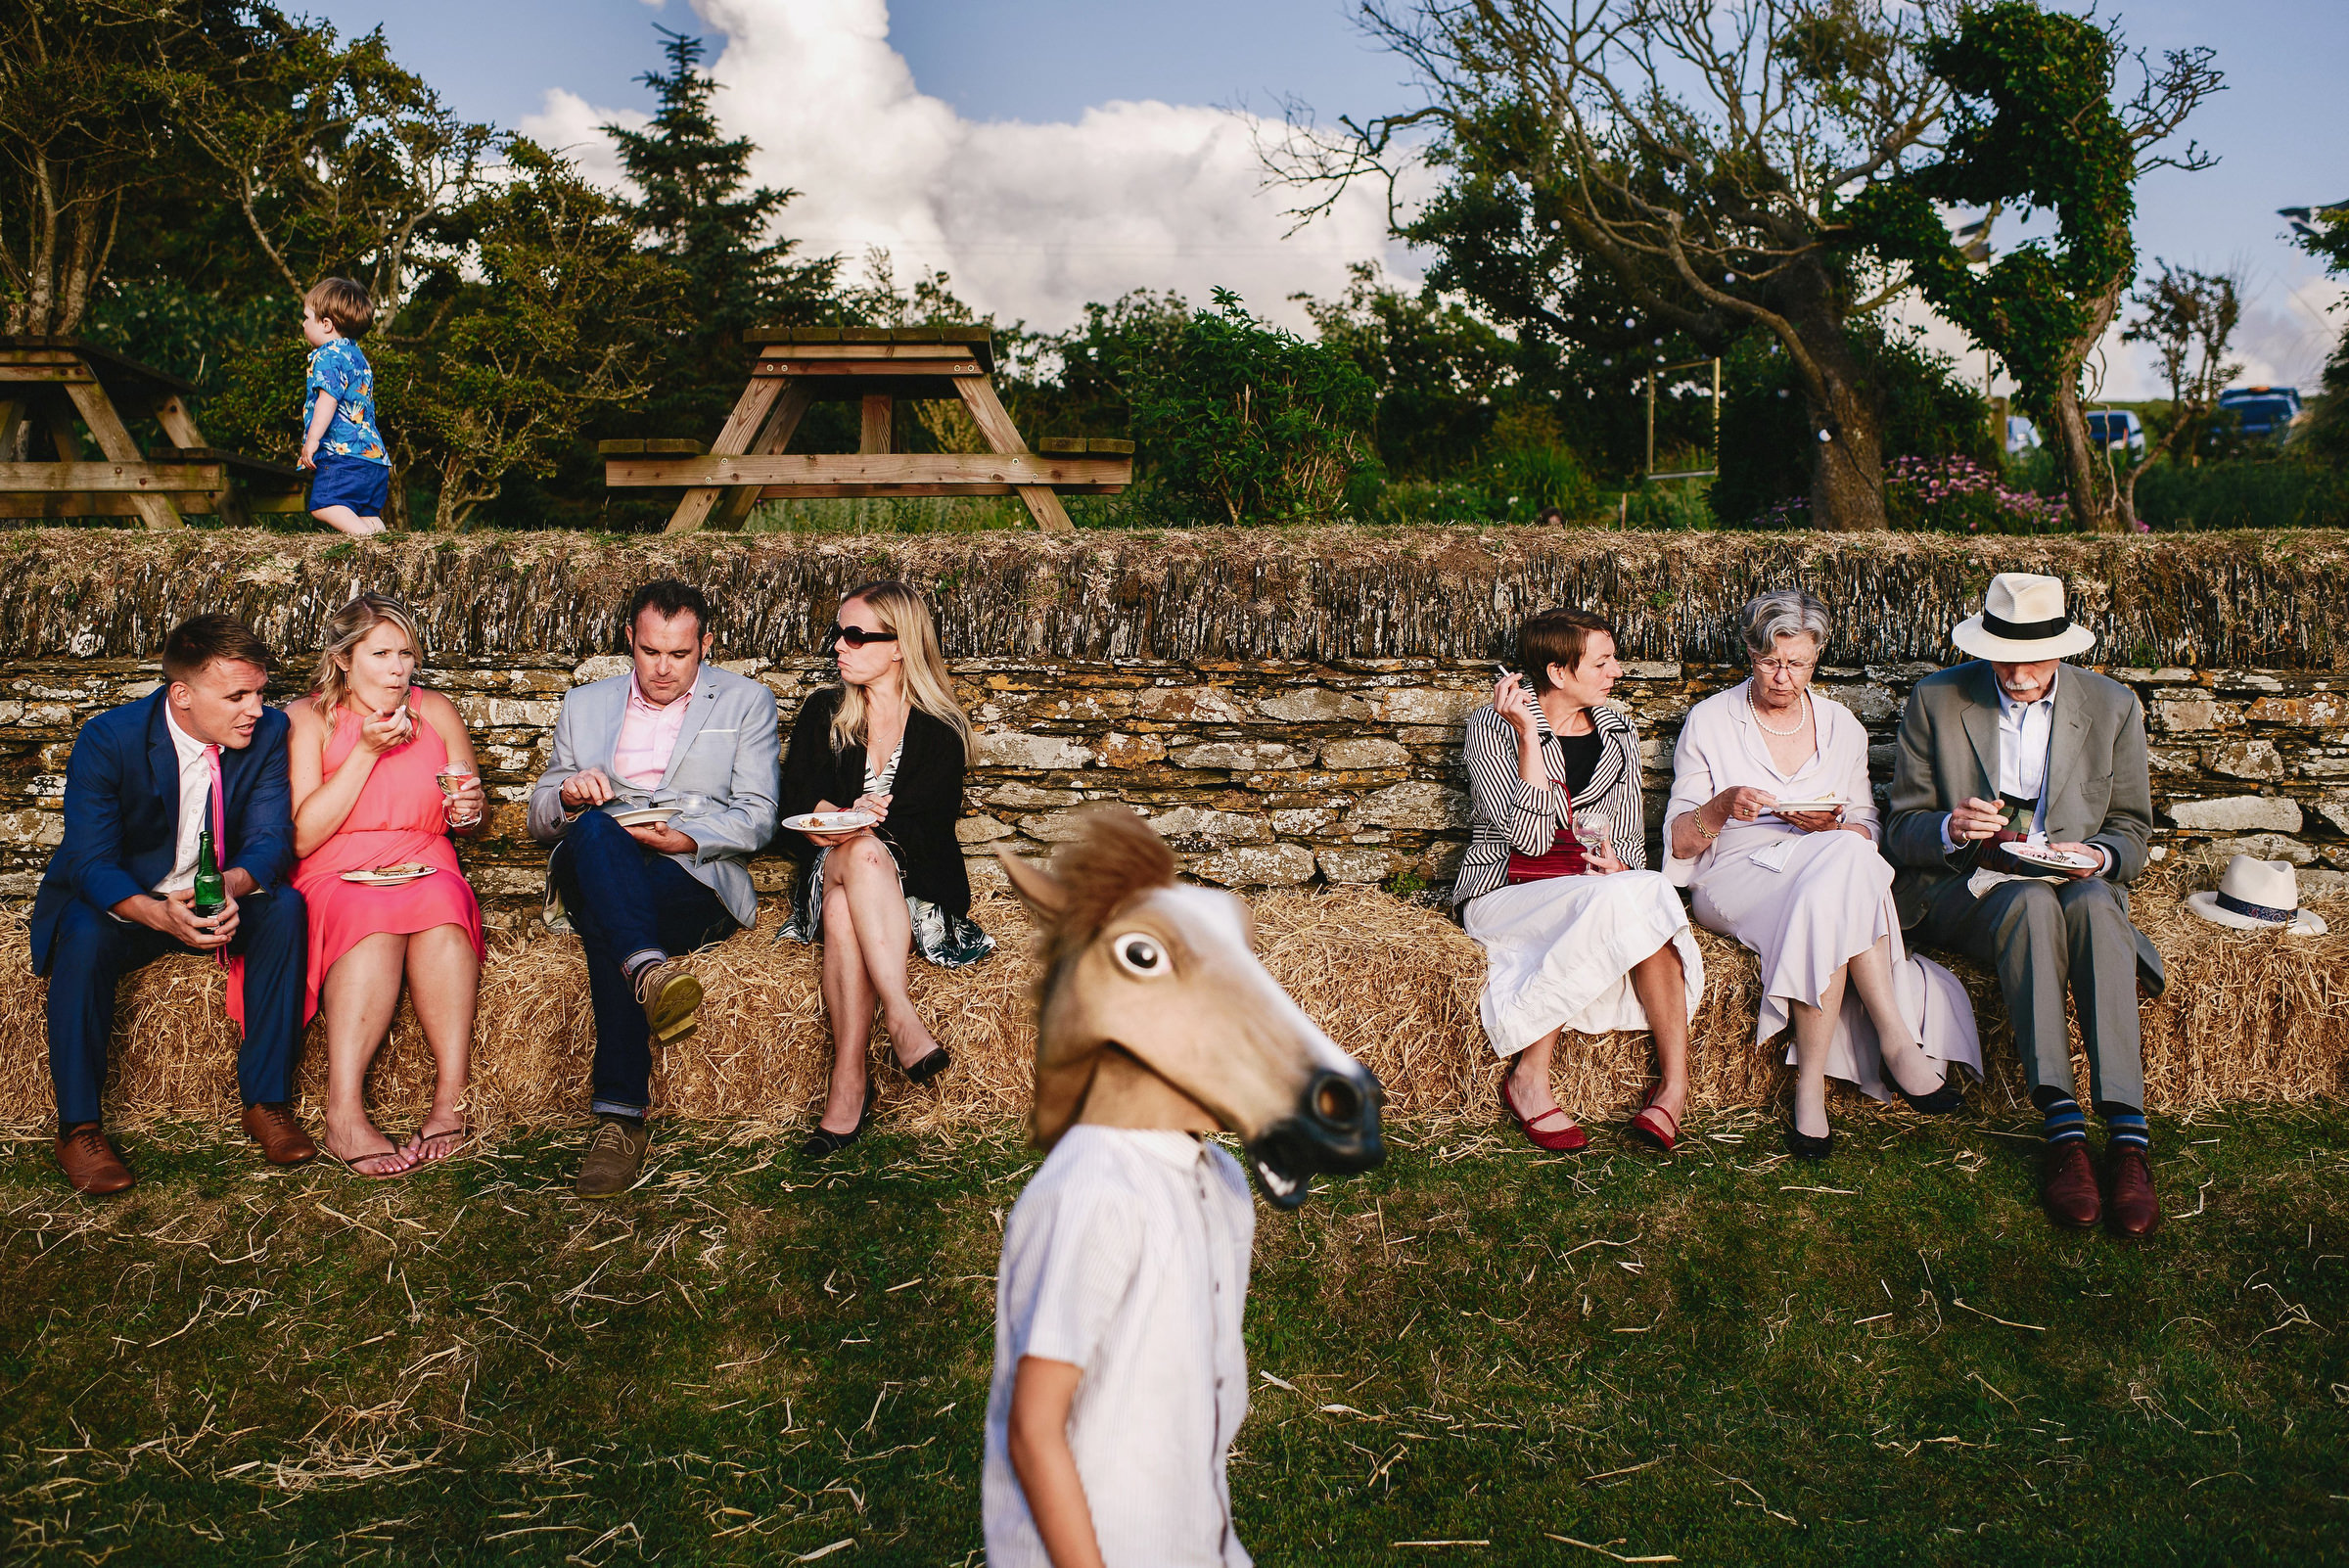 Layered photo of guests at a wedding photo by Andy Gaines Photography